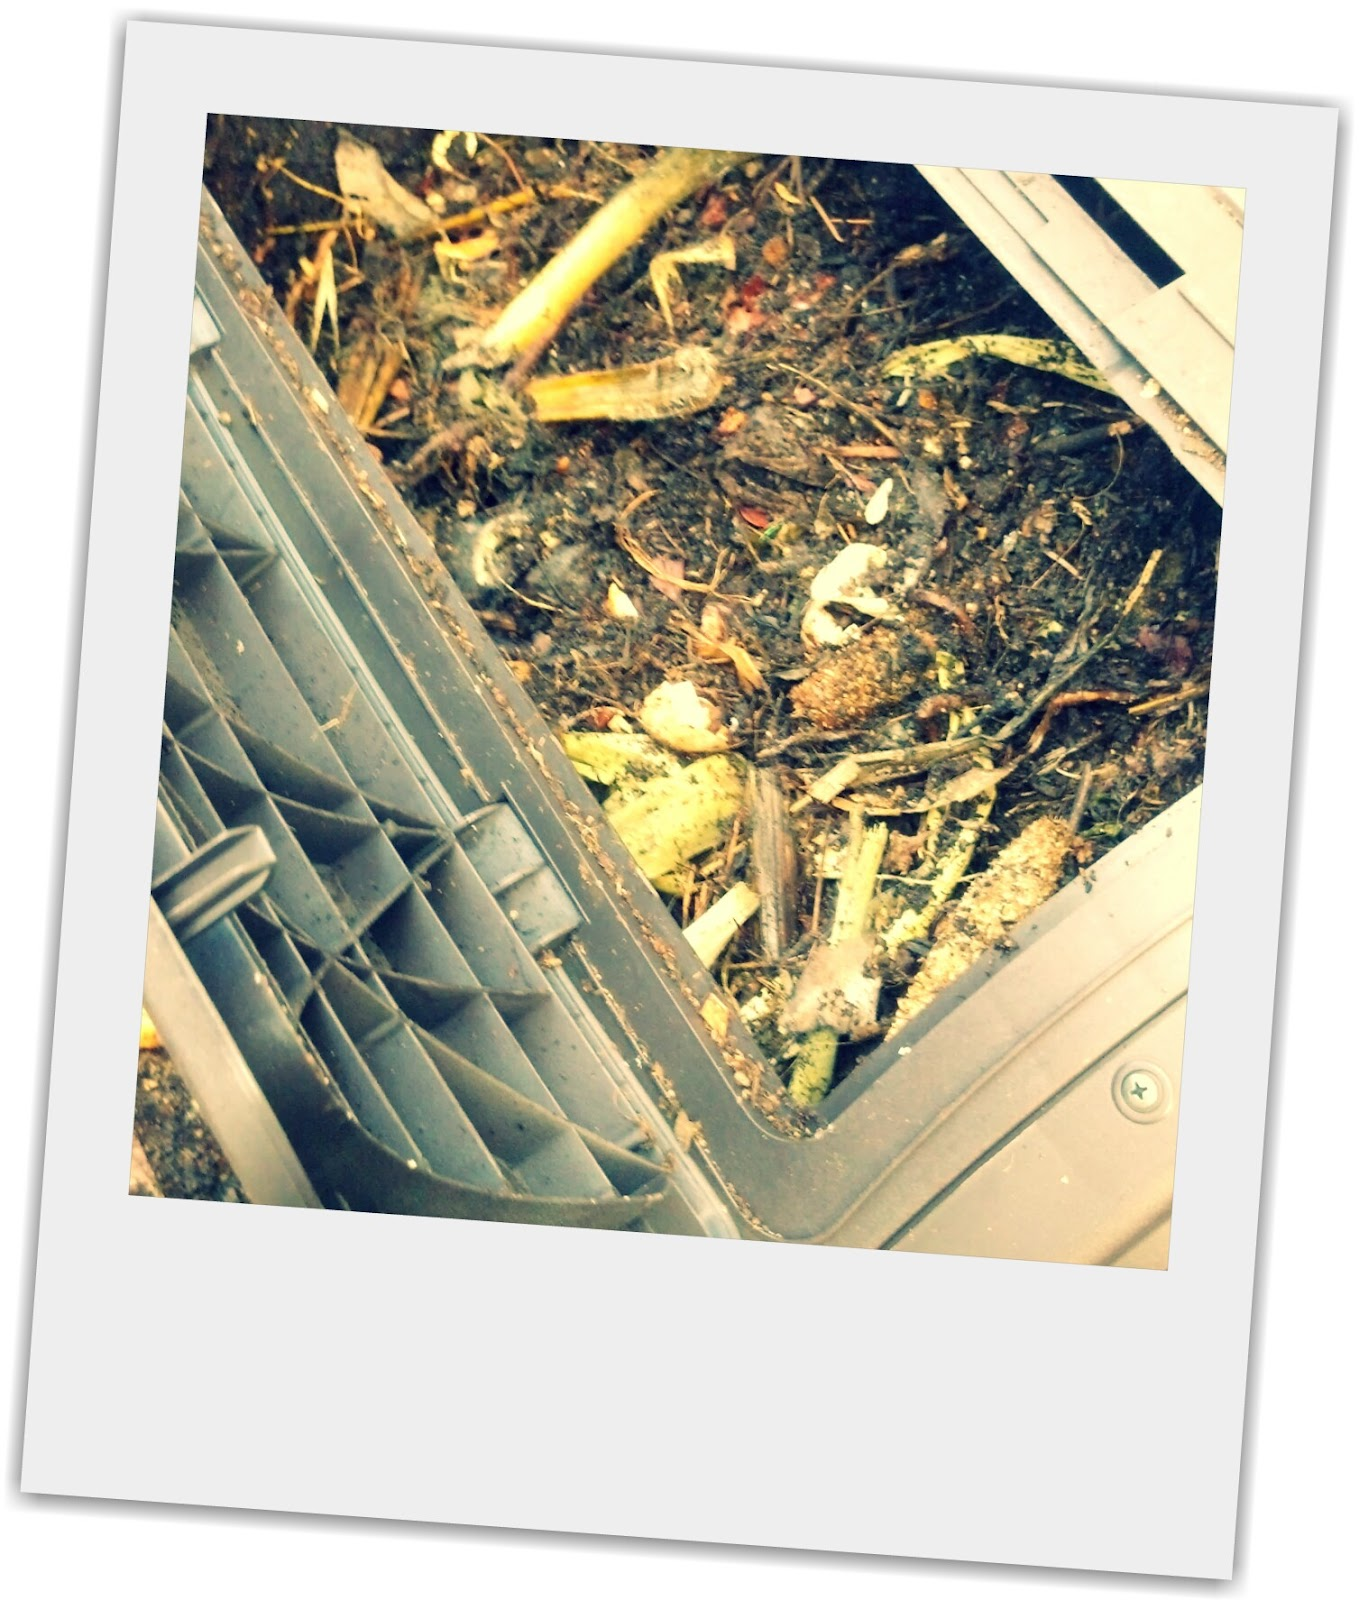 How to make compost bin for kitchen